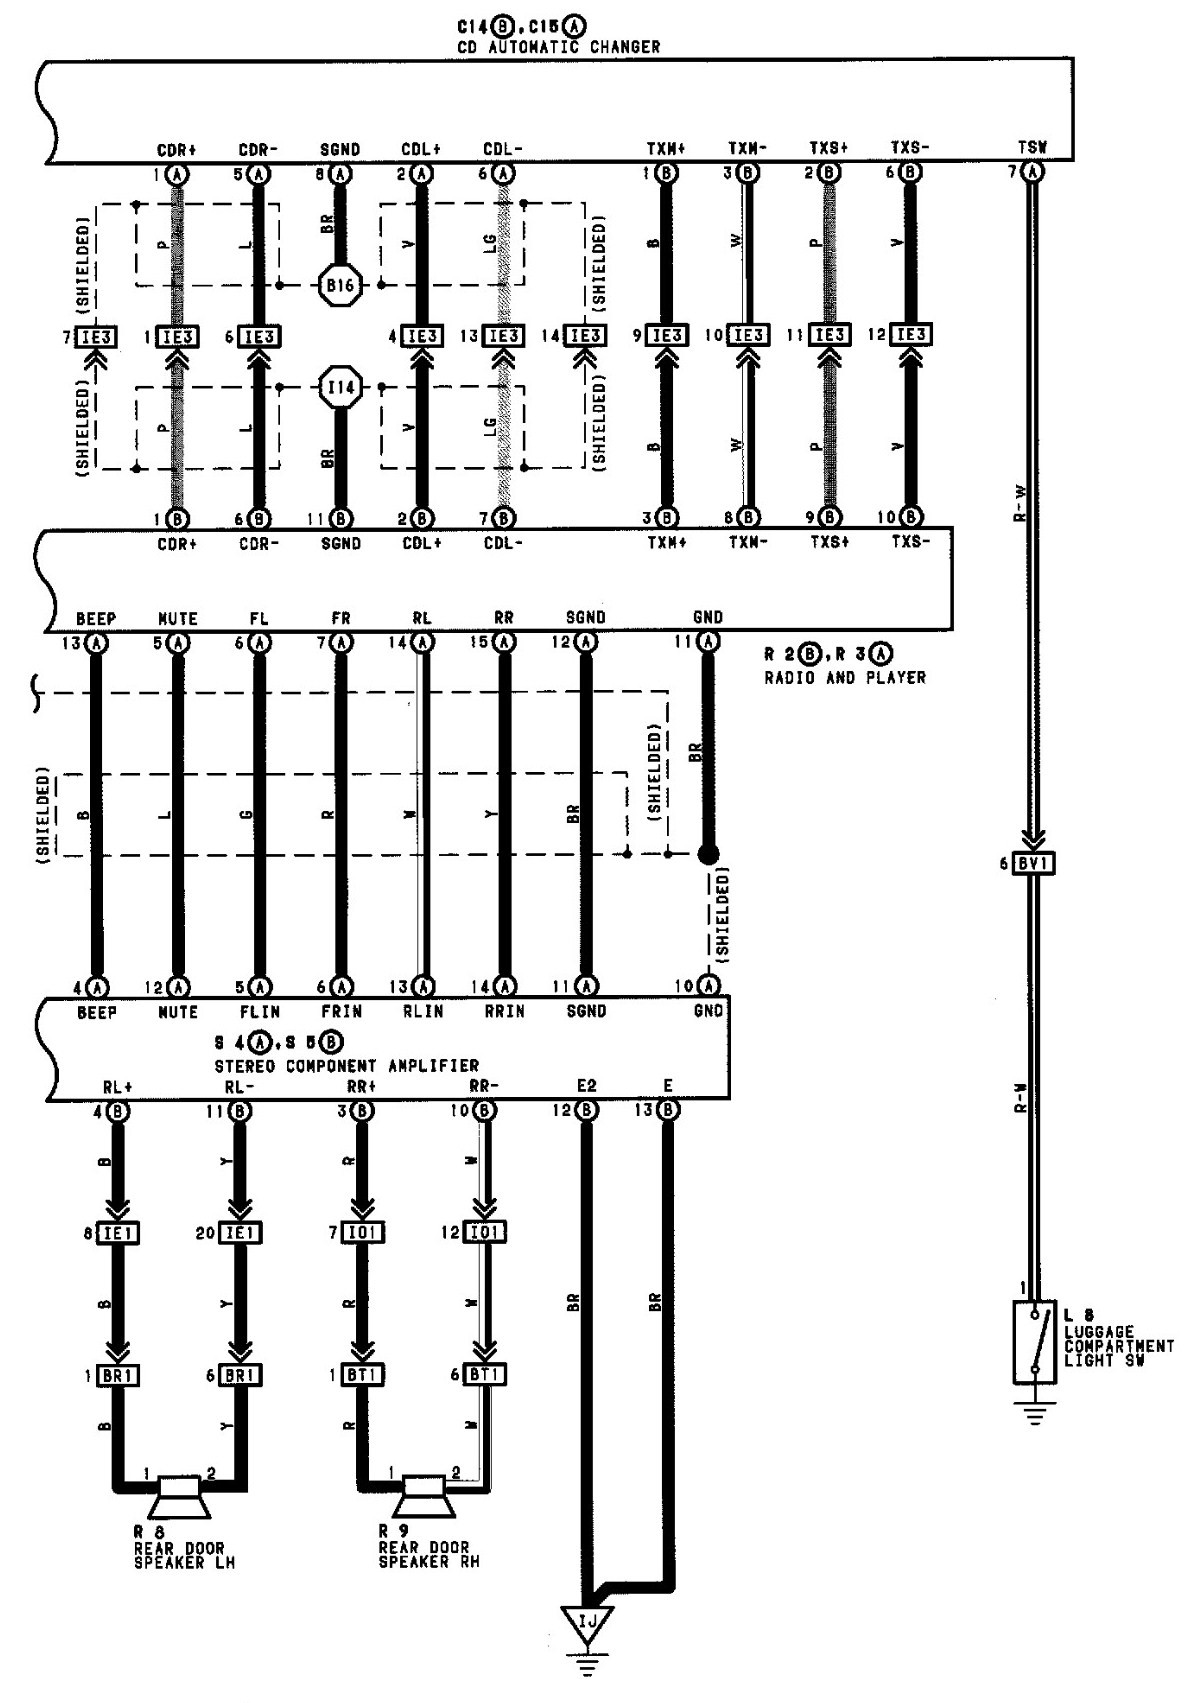 wiring diagram moreover 1984 chevy truck ignition wiring diagram